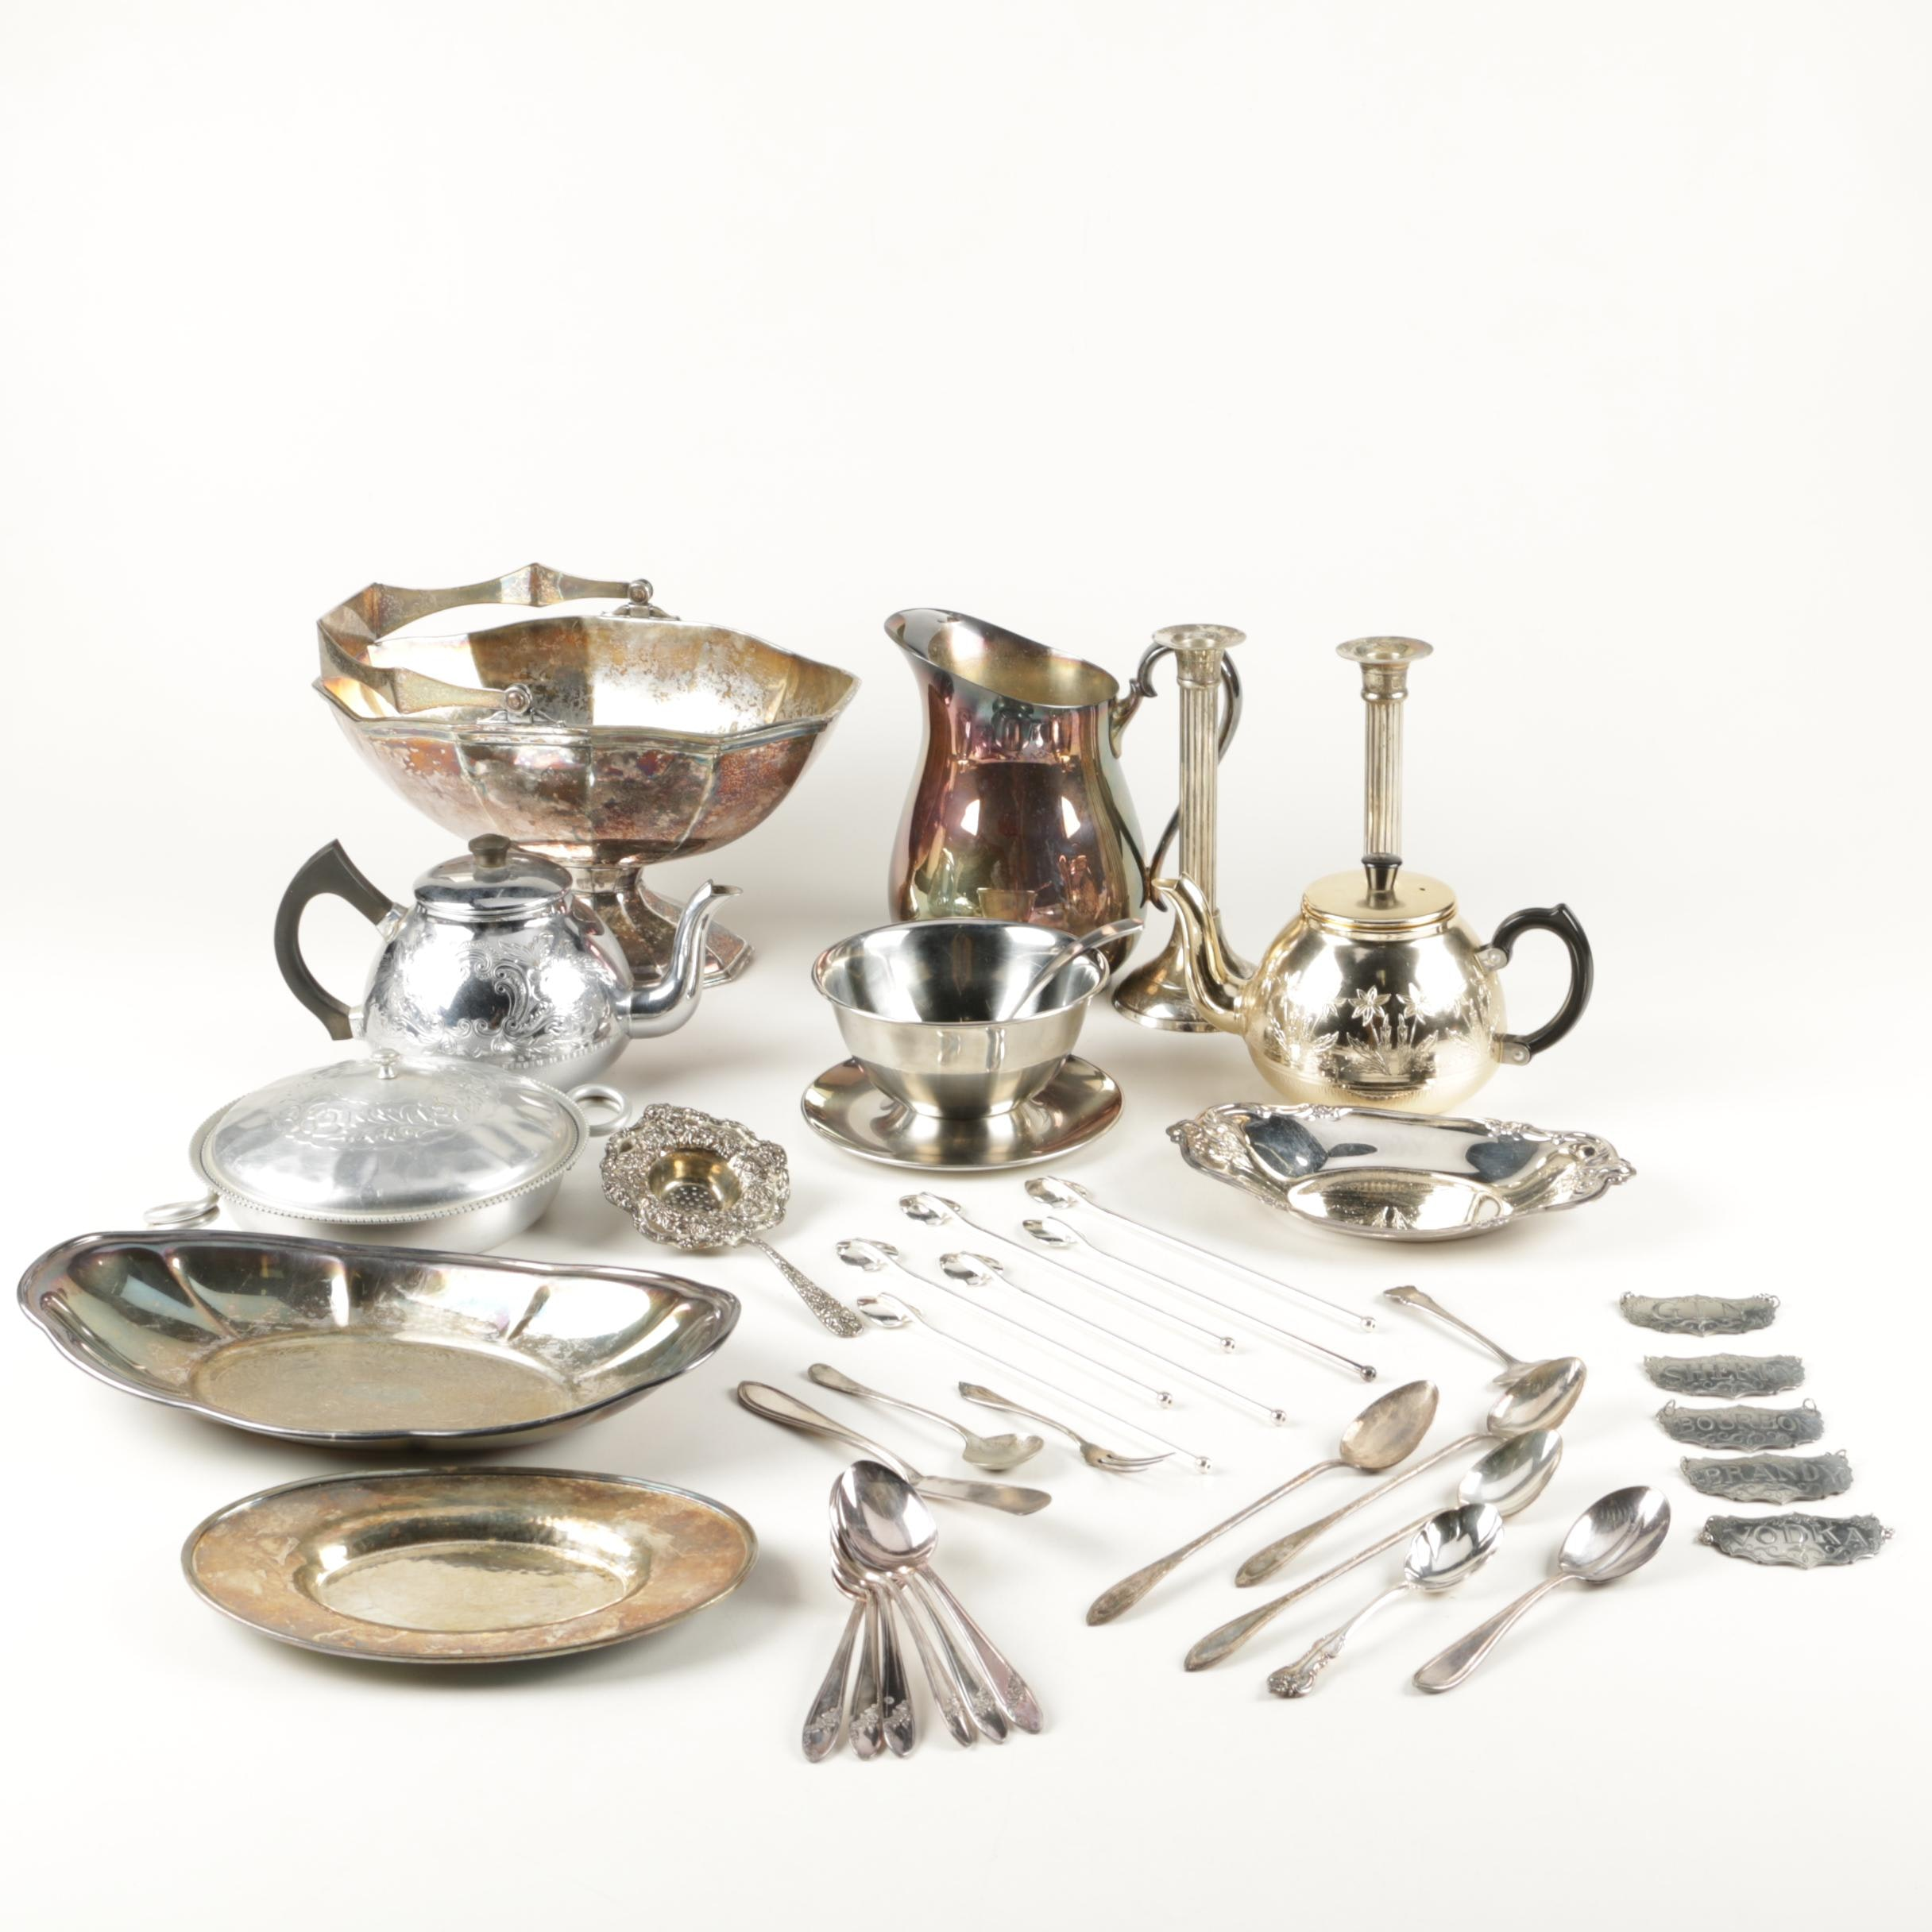 Godinger, Oneida, and Other Silver Plate and Metal Tableware